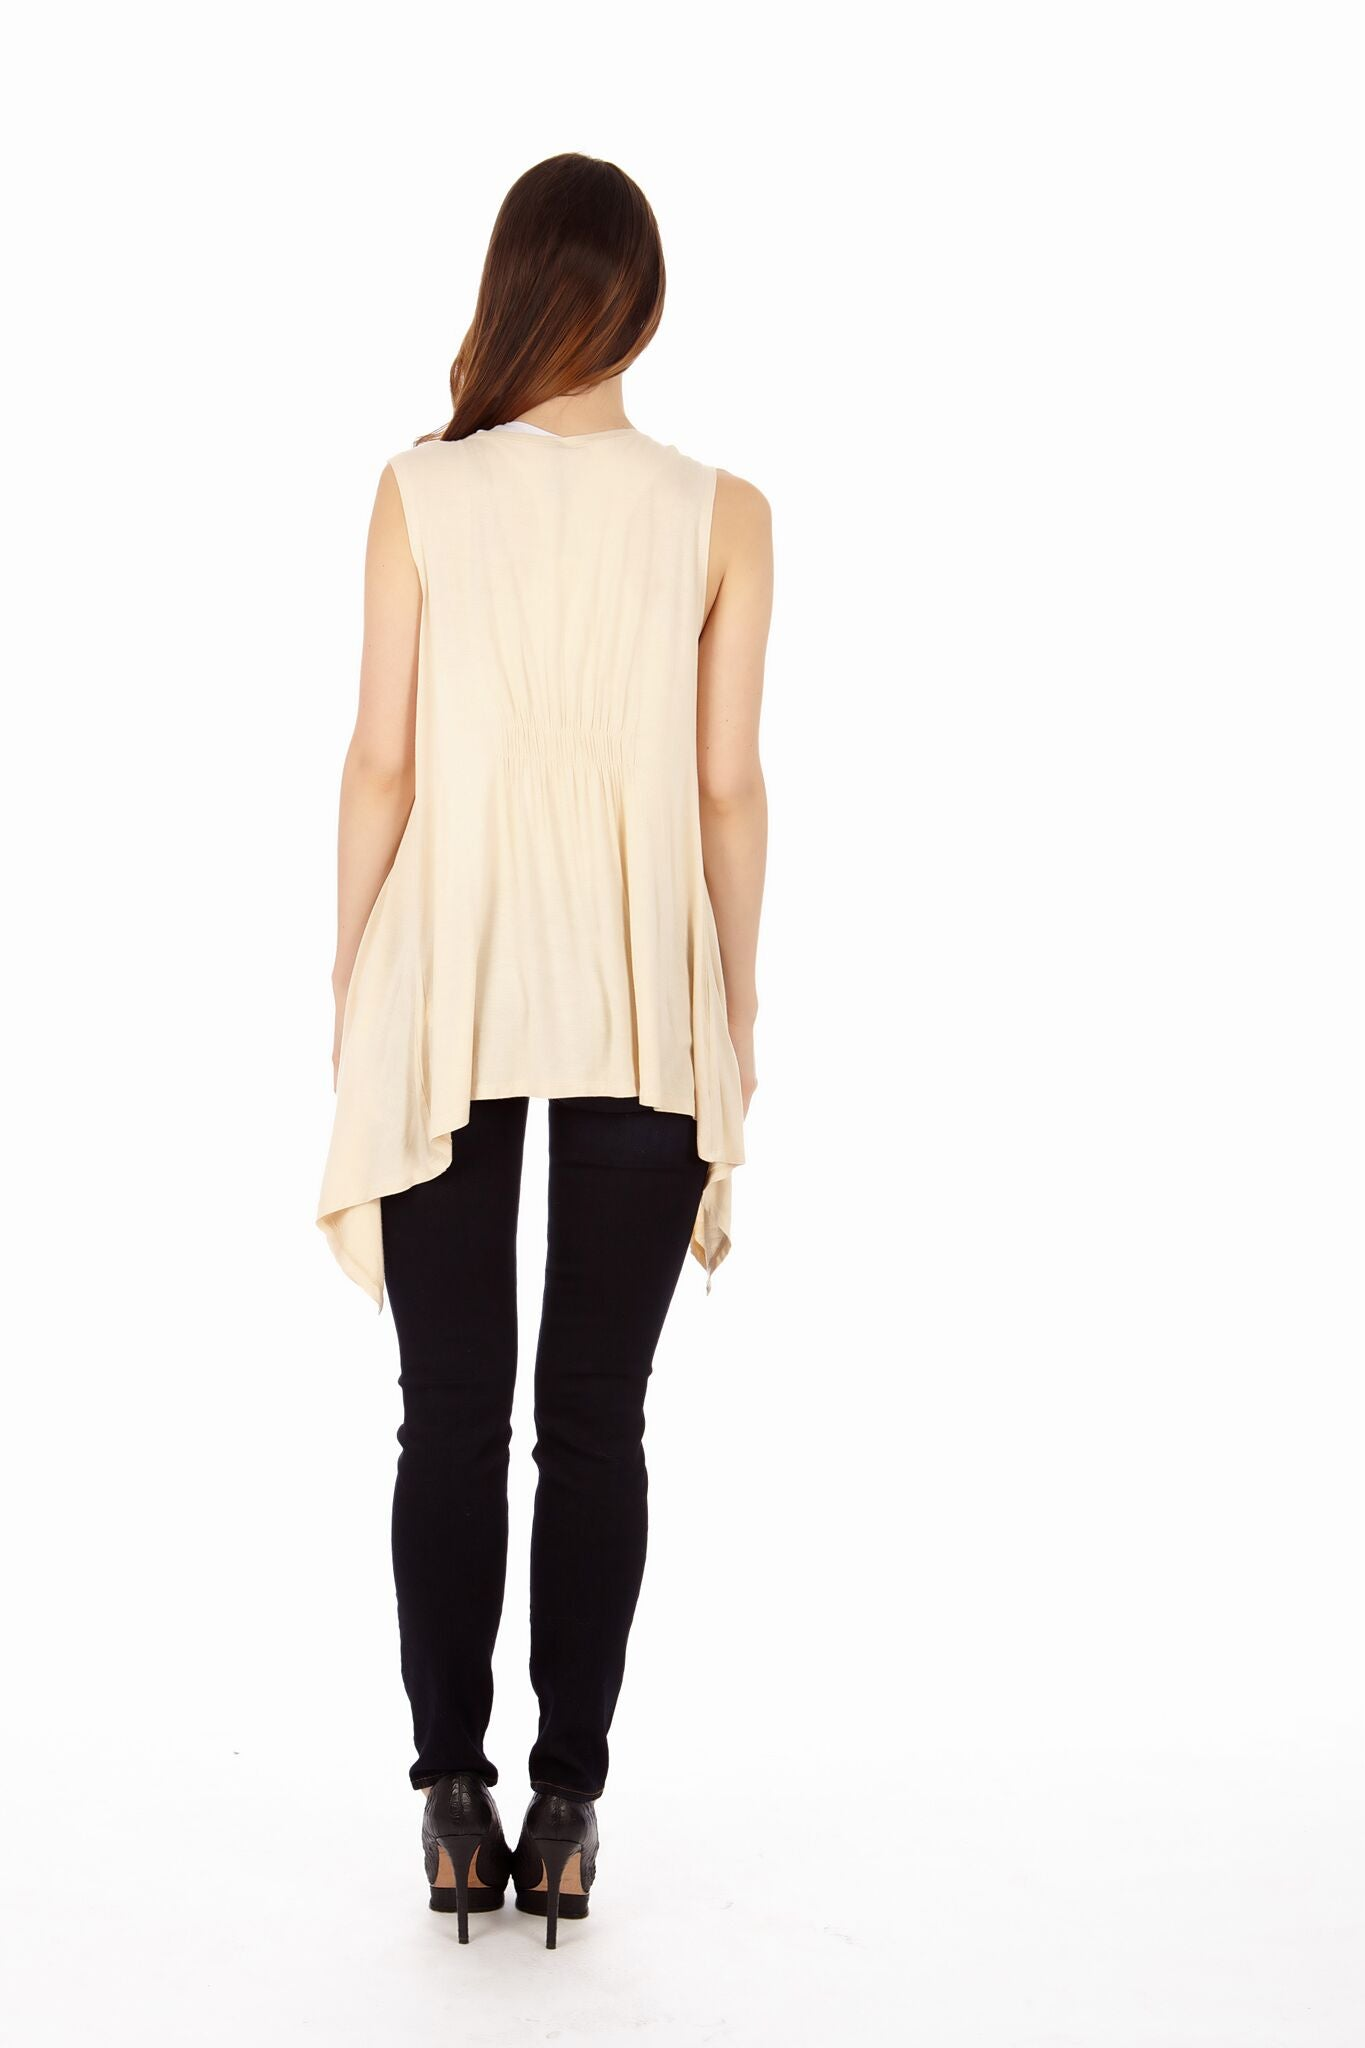 Sand Color Sleveless Cardigan - Home Goods Galore